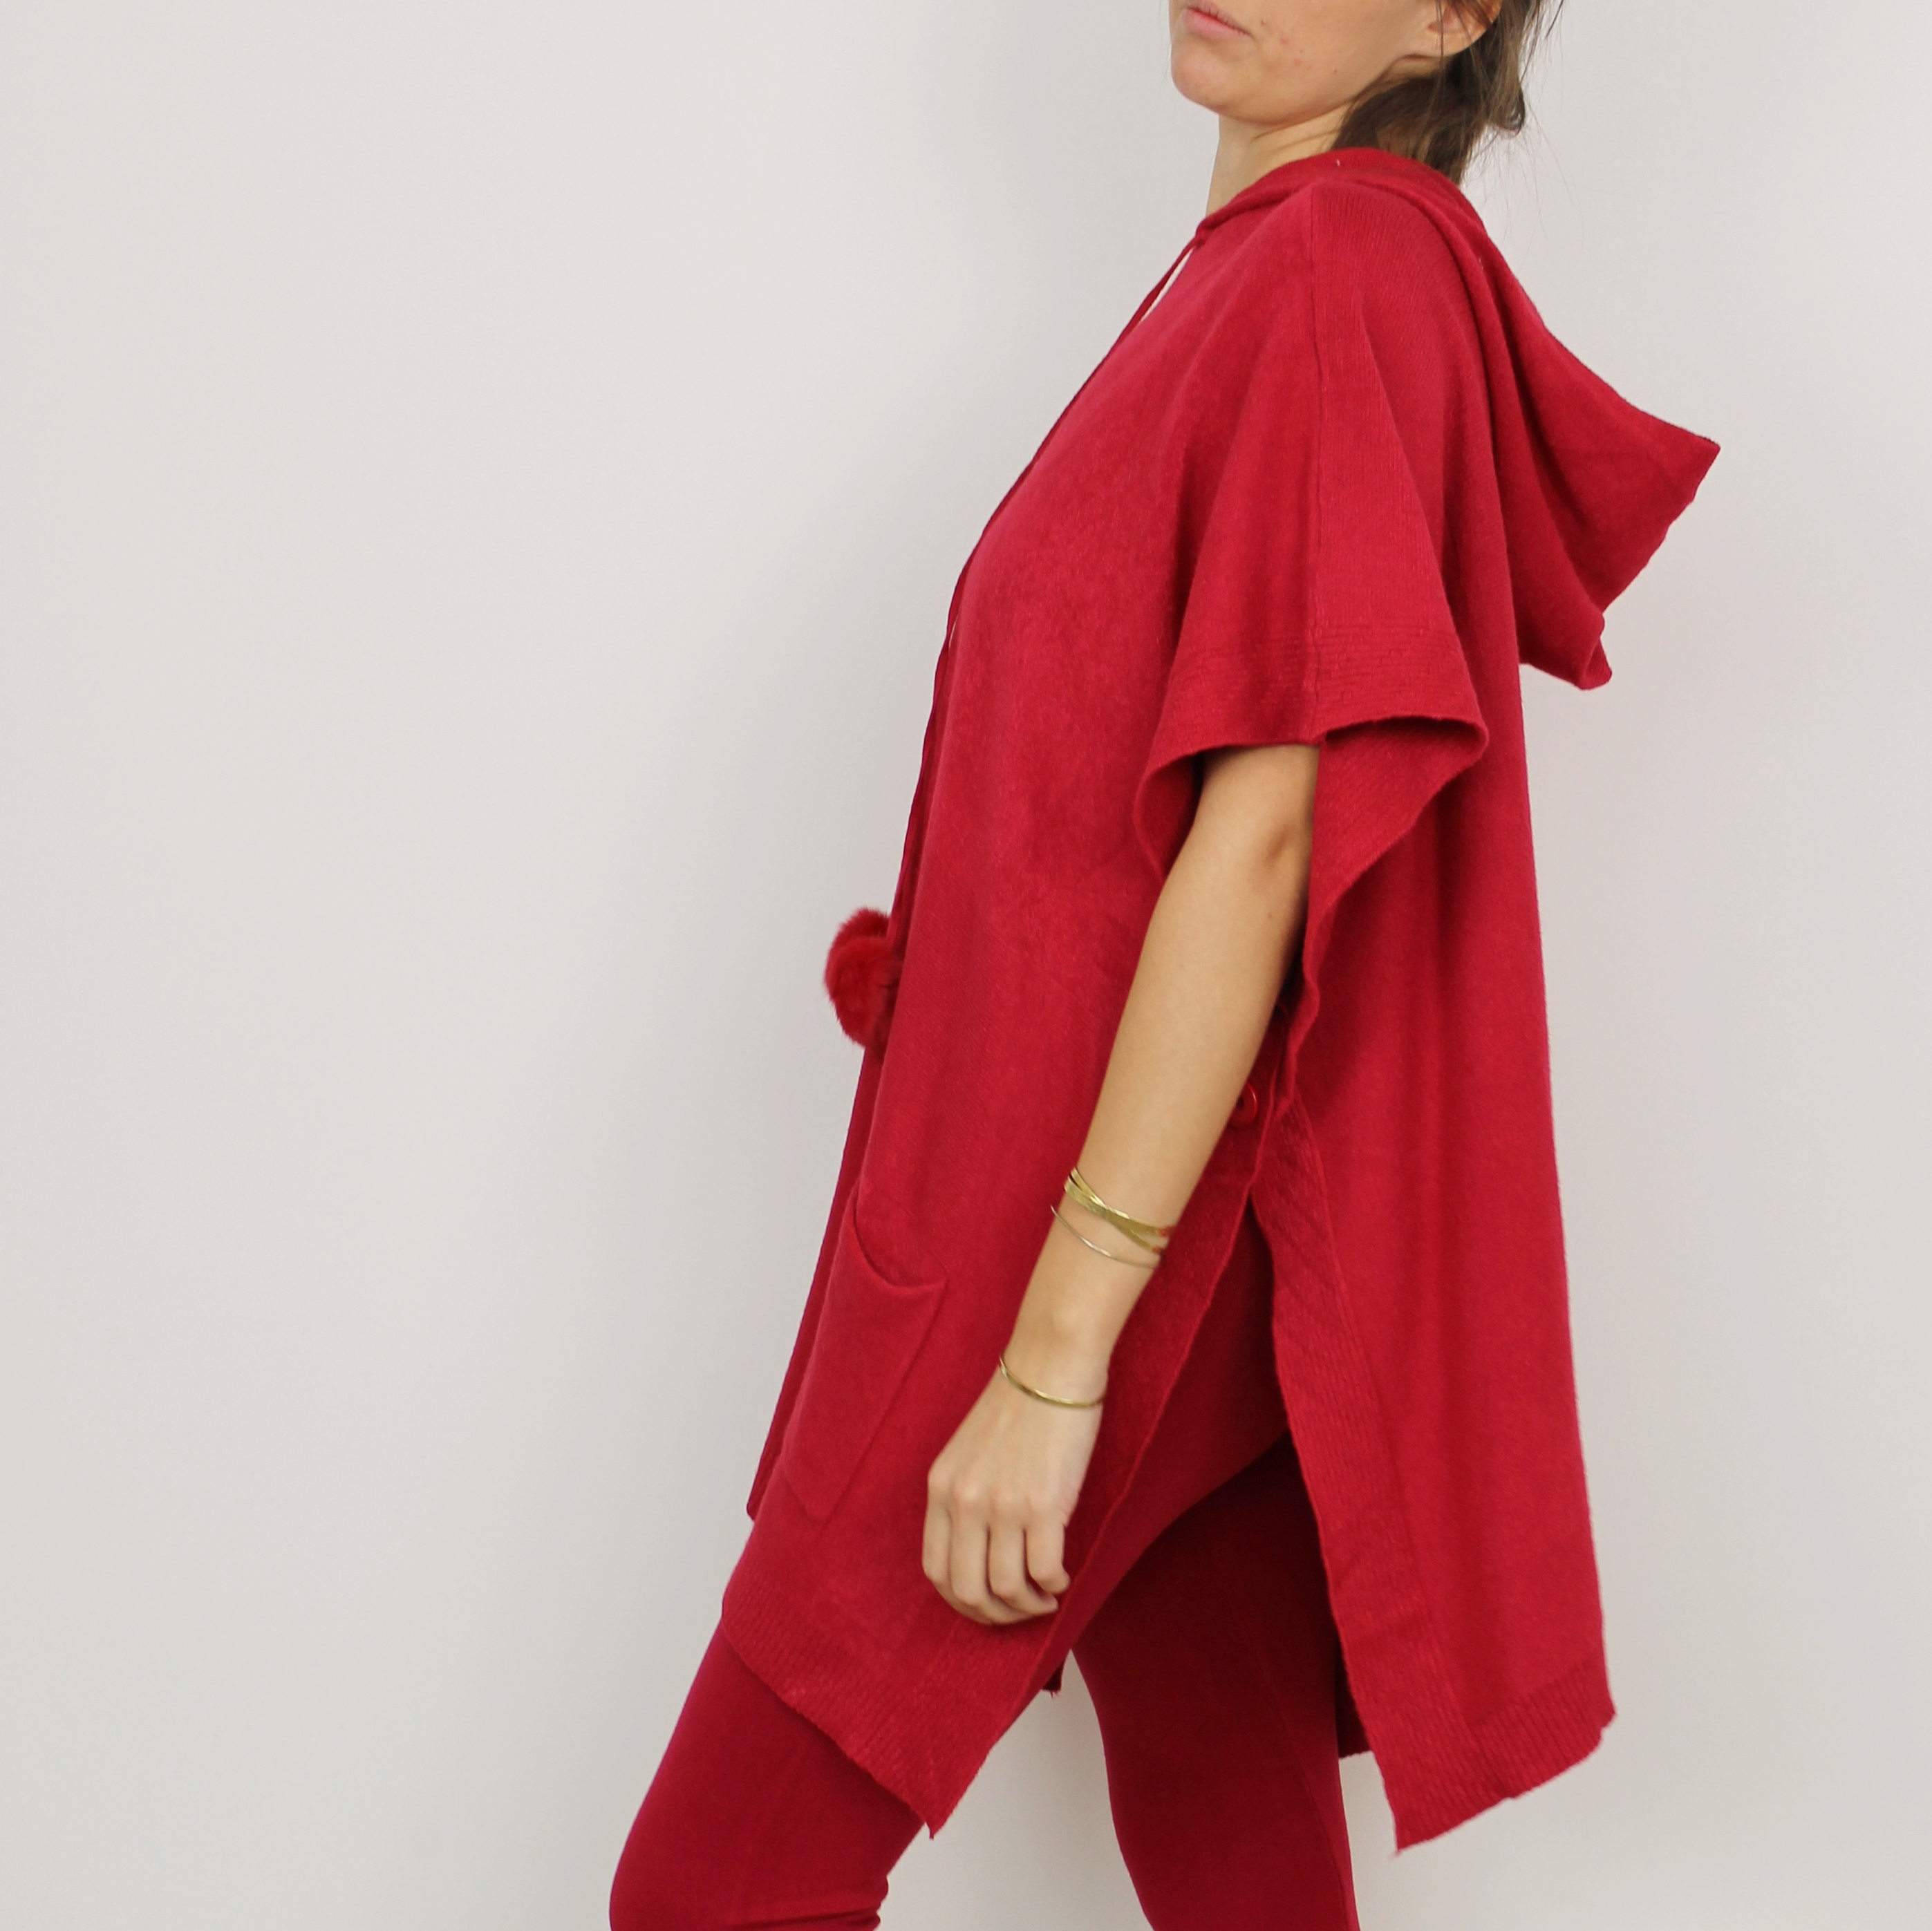 Poncho Cocooning laine   cachemire Rouge - Homewear Femme - Cocoony 828572d91b94